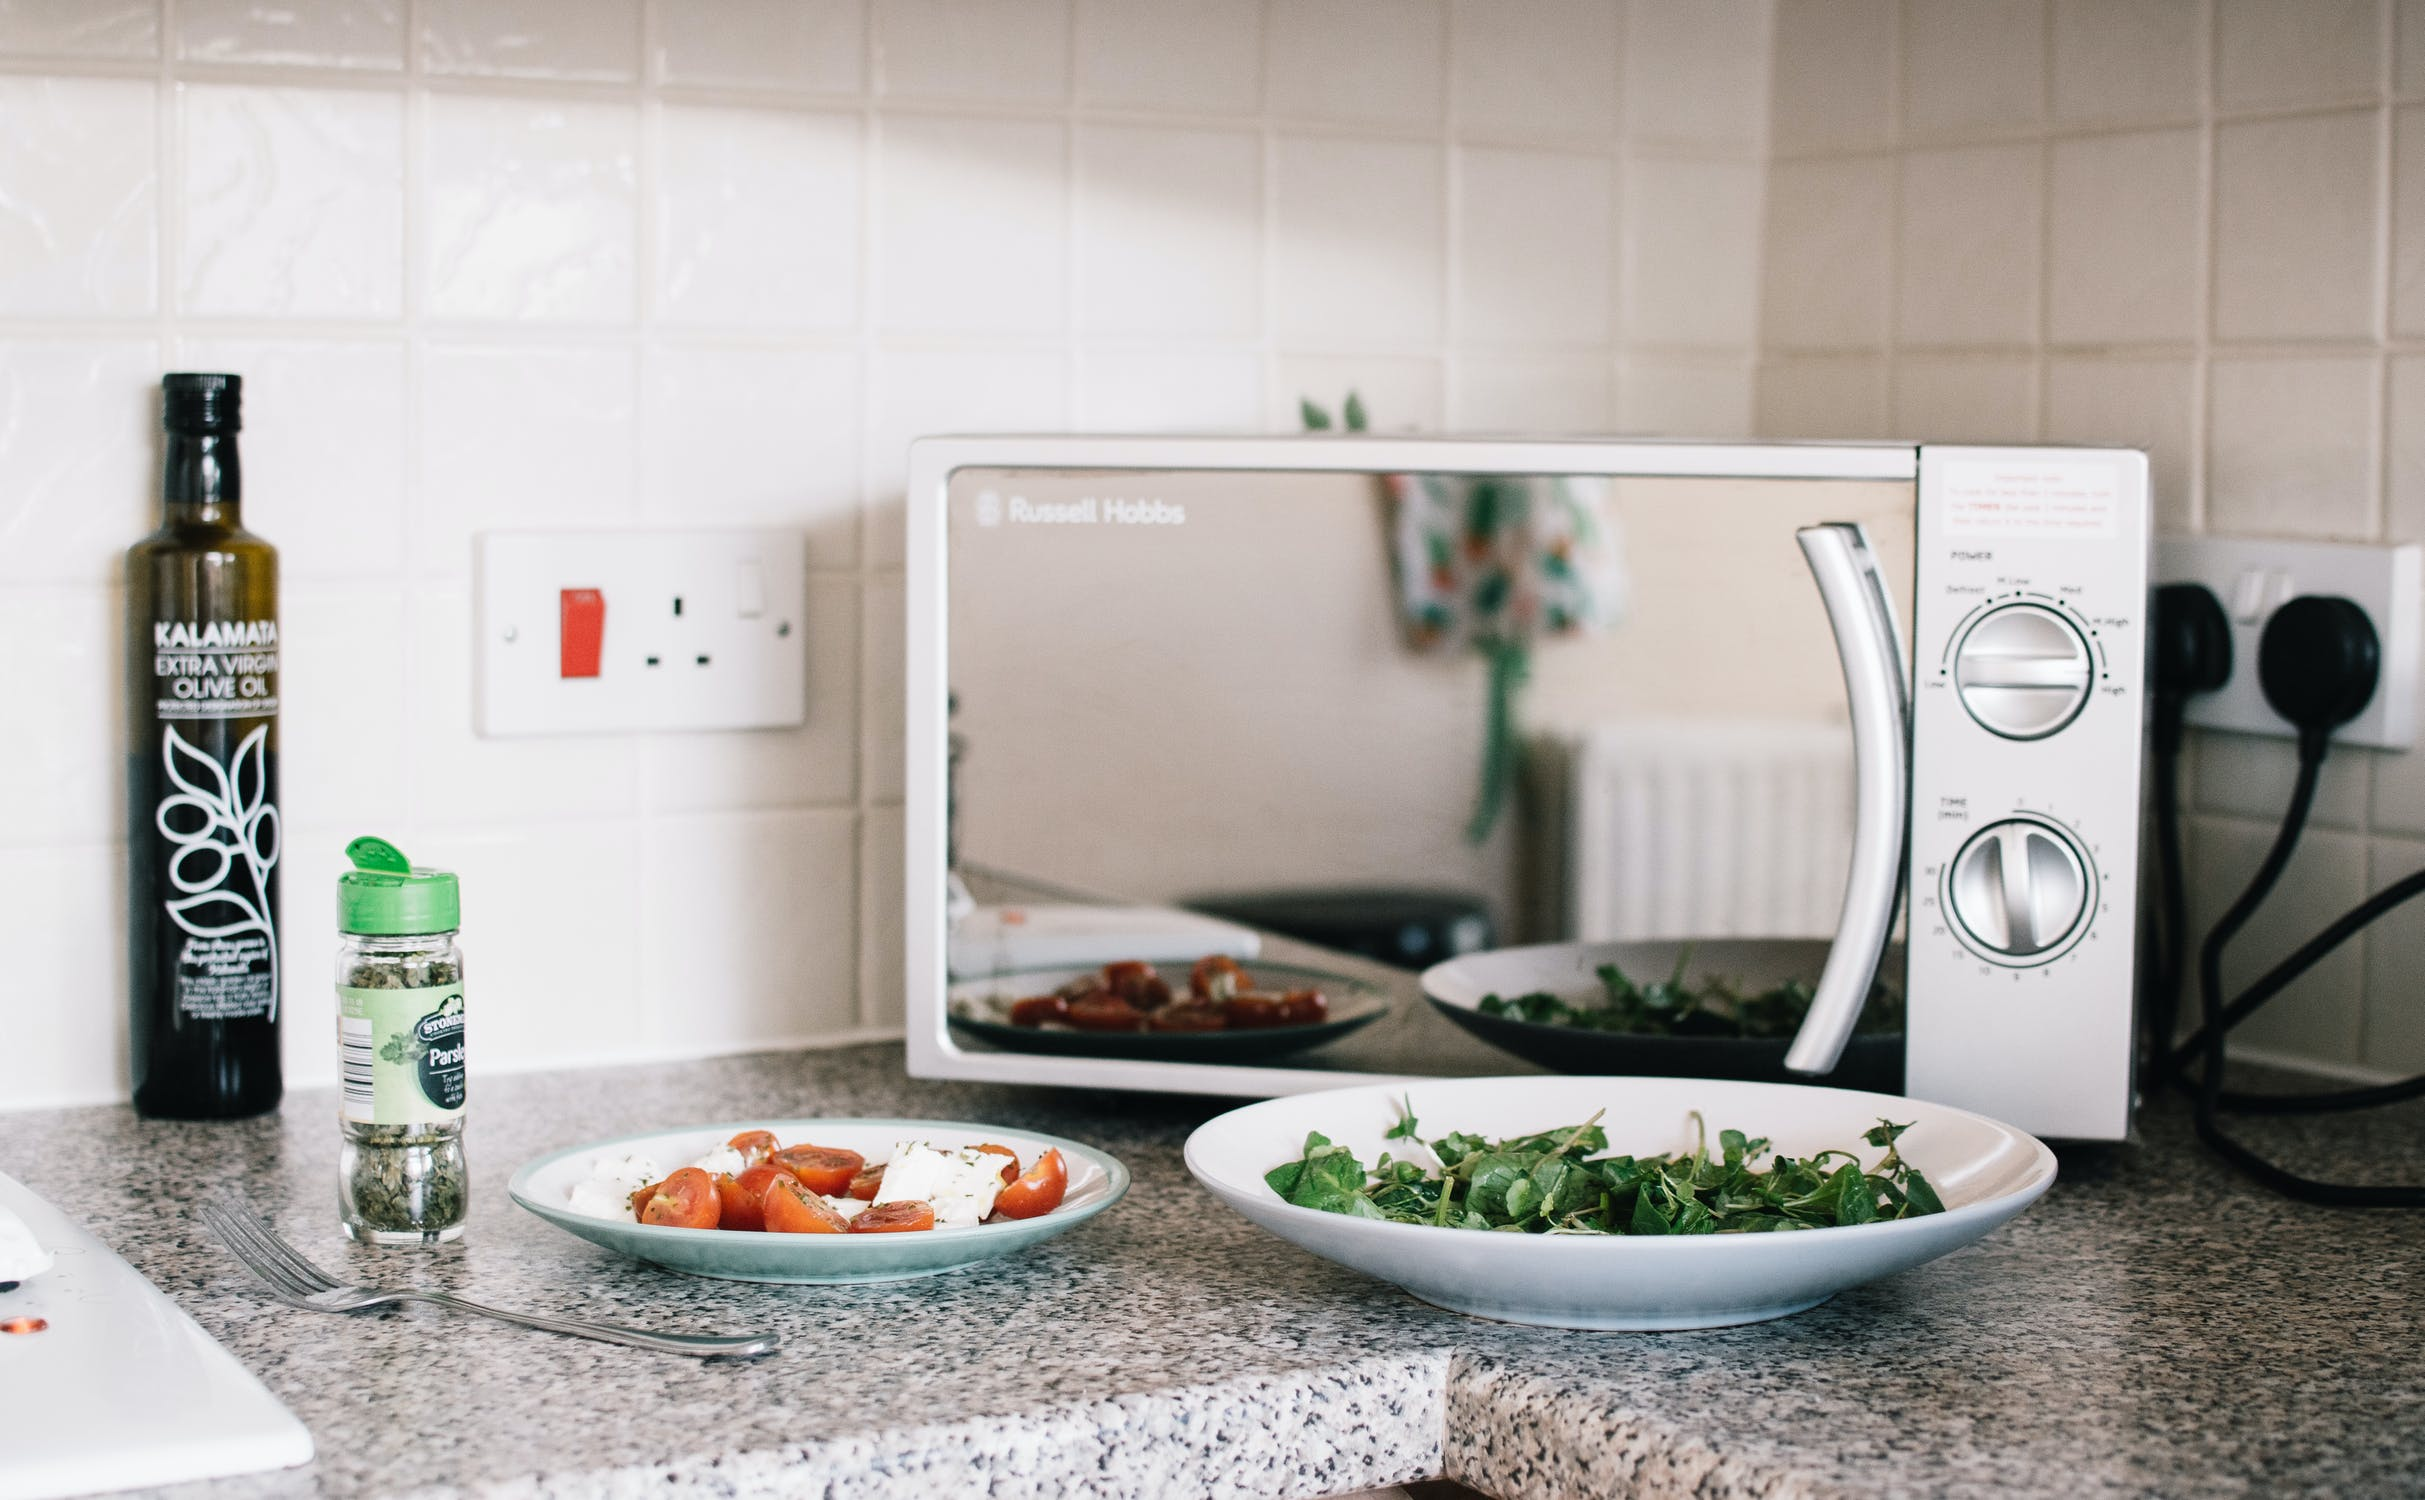 Buying Guide for choosing the right microwave oven